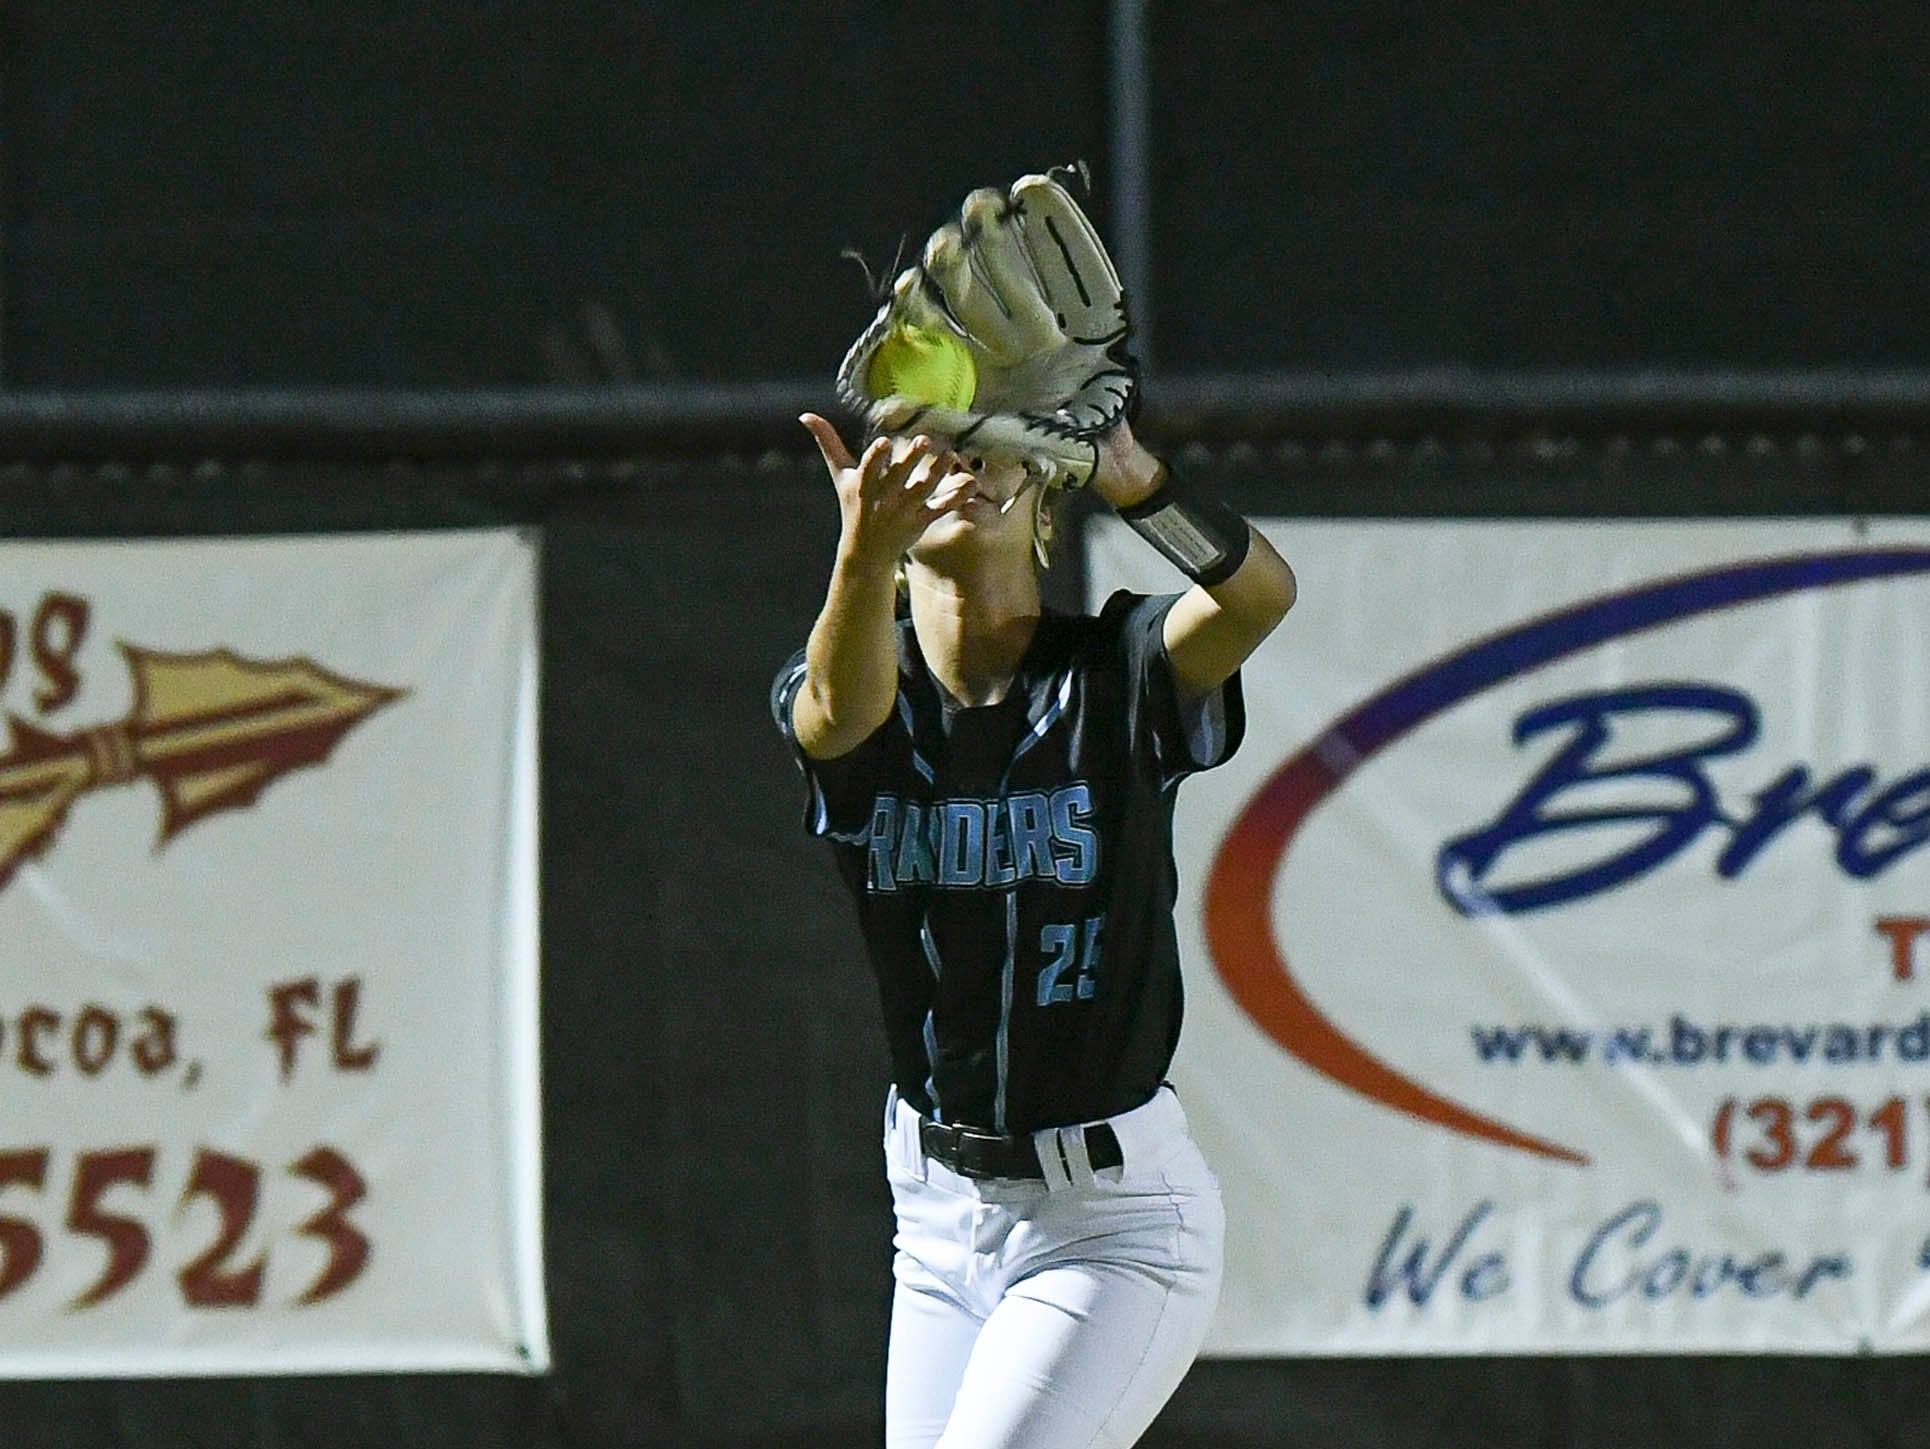 Autumn Charvet of Rockledge tracks down a fly ball during Wednesday's game in Rockledge